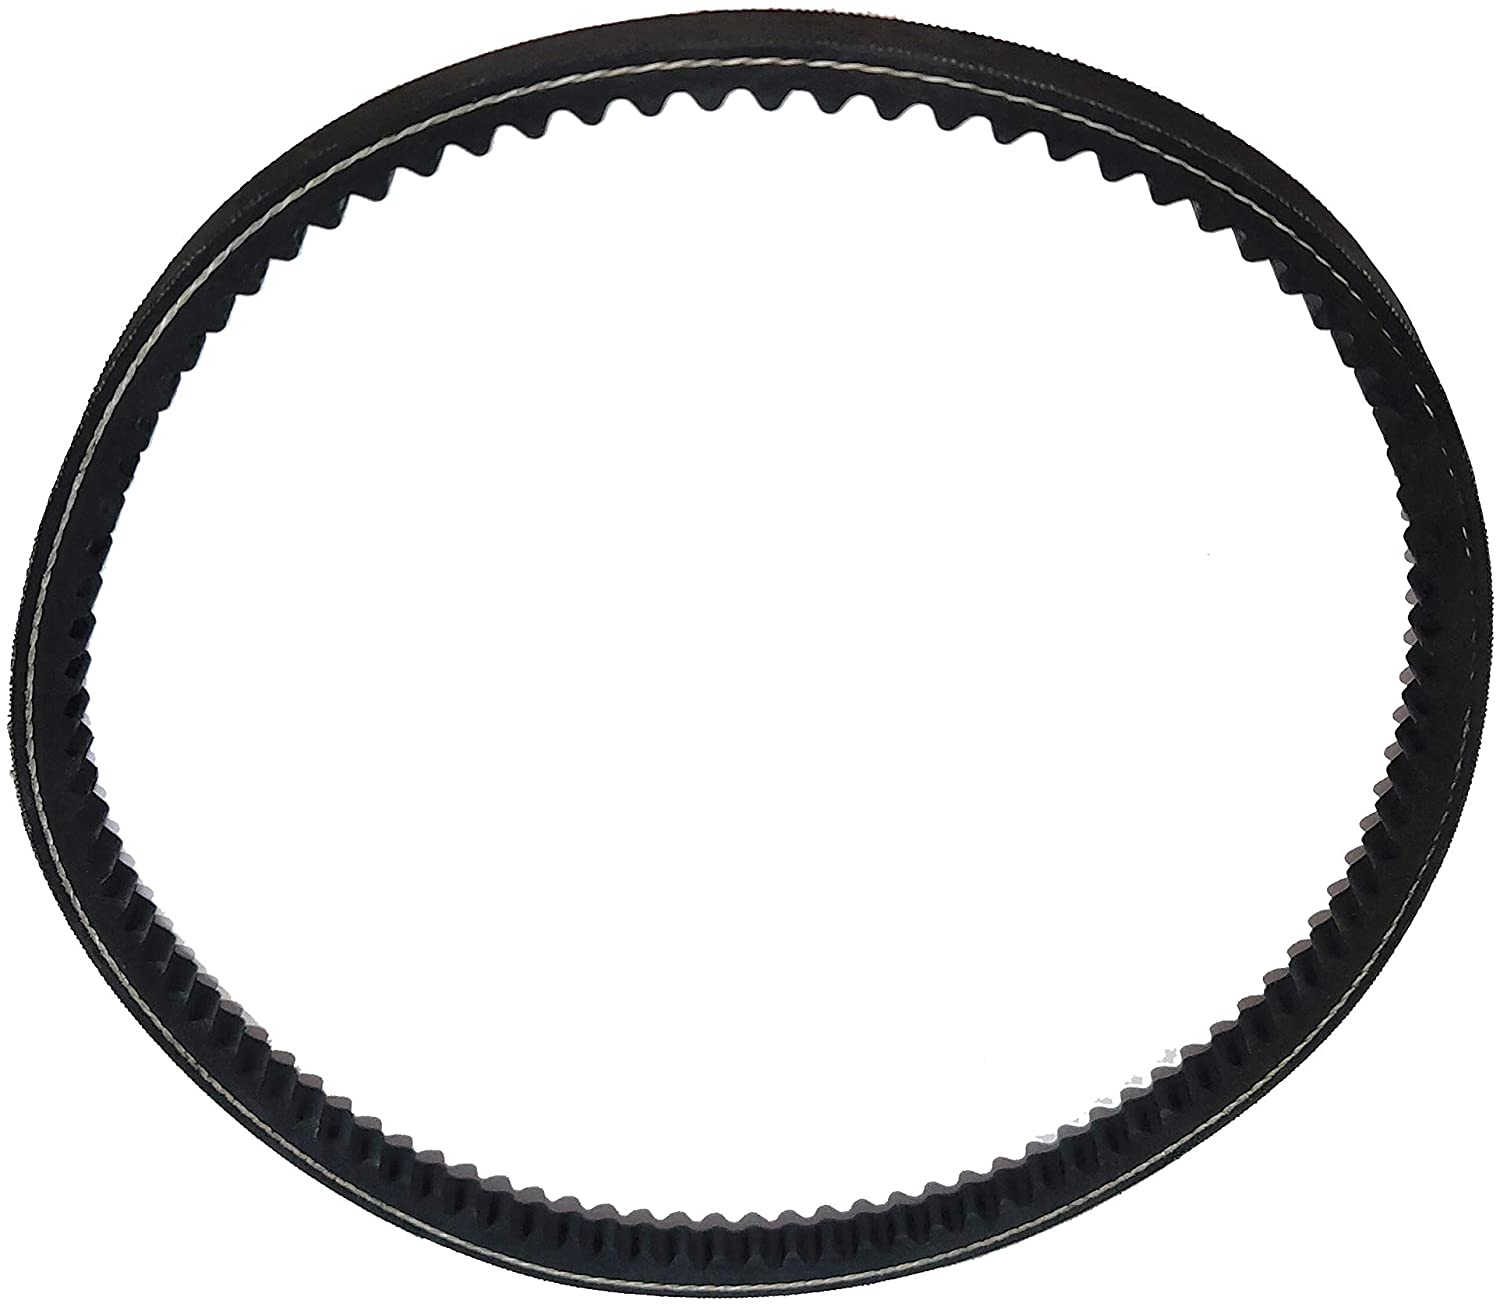 Replacement Go Cart Cogged Belt for Comet 203591, Yerf Dog Q43103W, Q43203W, Kartco 7655